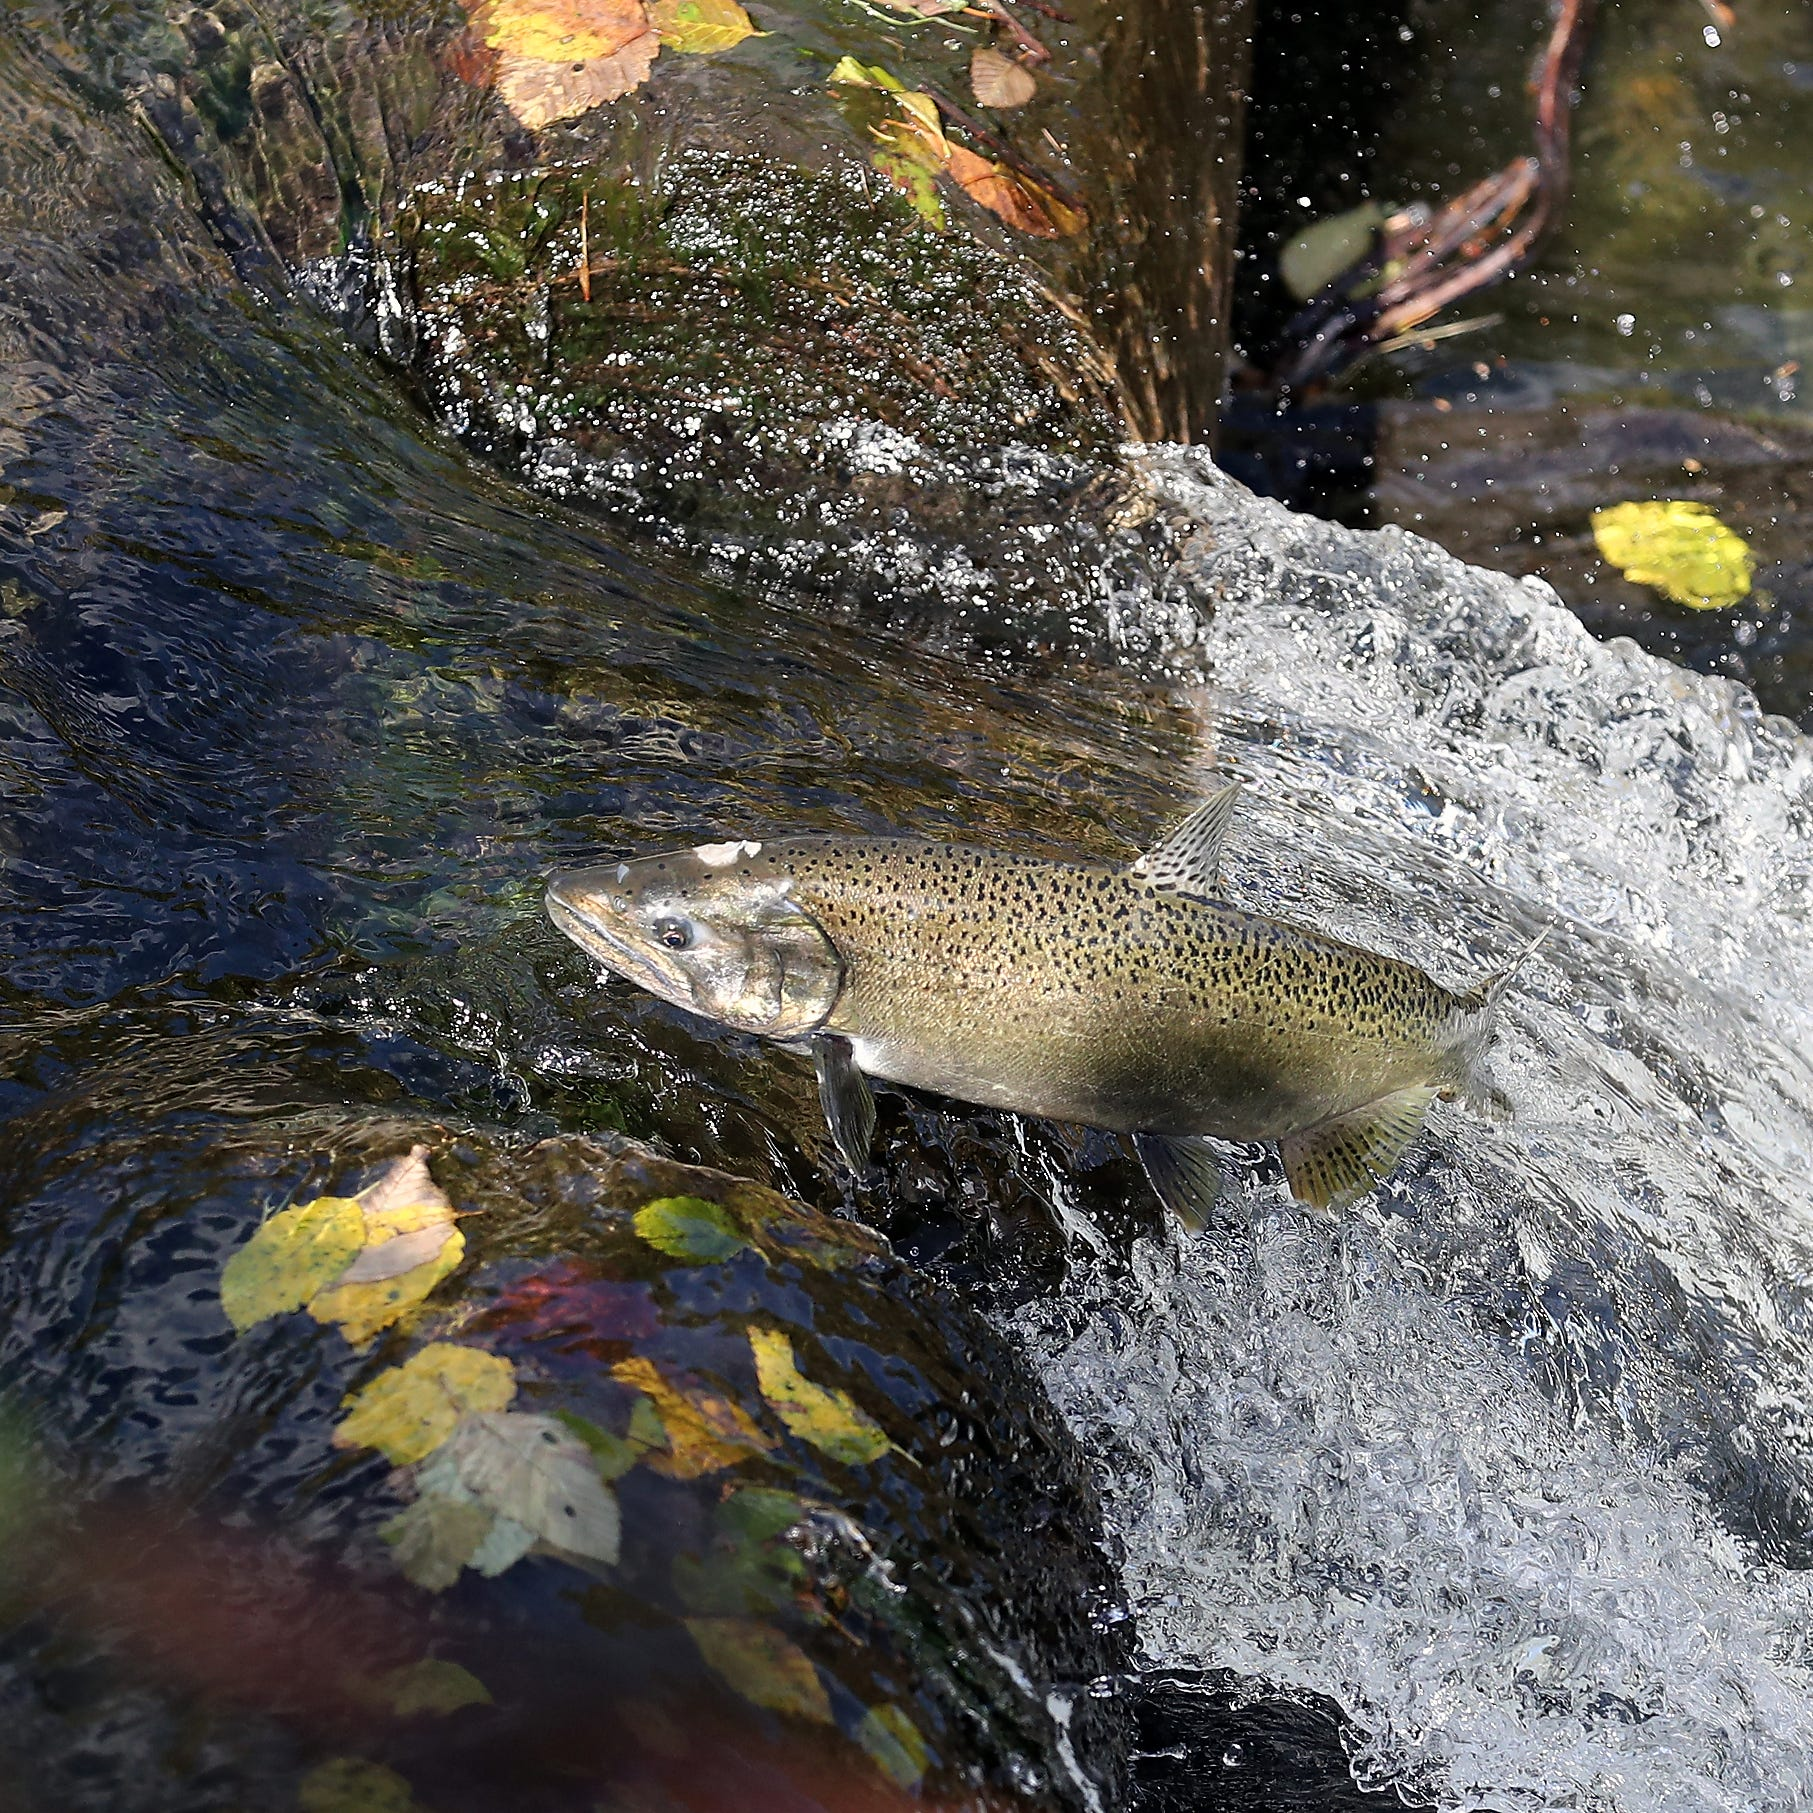 Salmon given assist to get over problematic Gorst weir